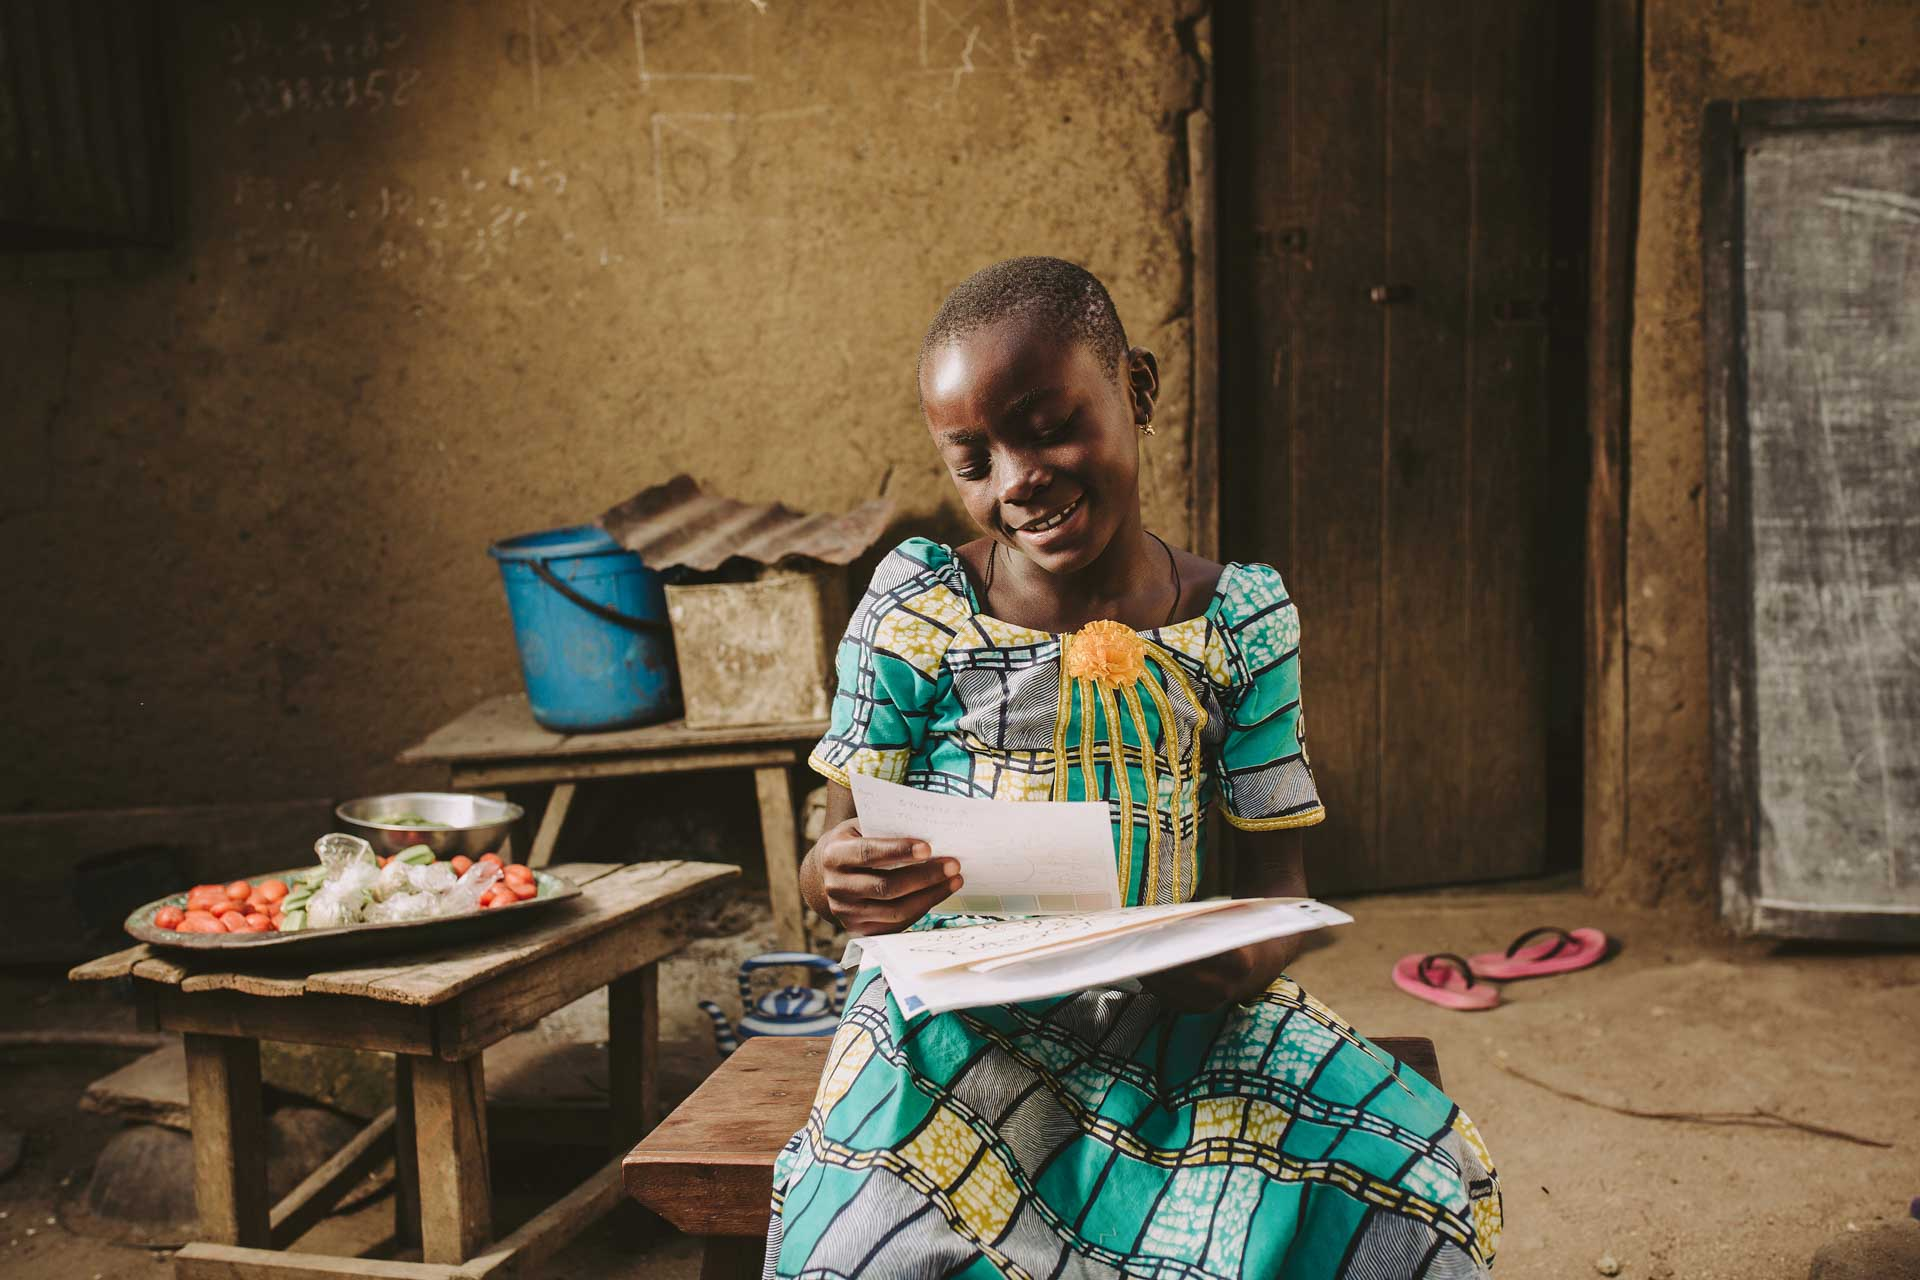 A young girl from Togo, in an ornate green dress, reads a letter from her sponsor.